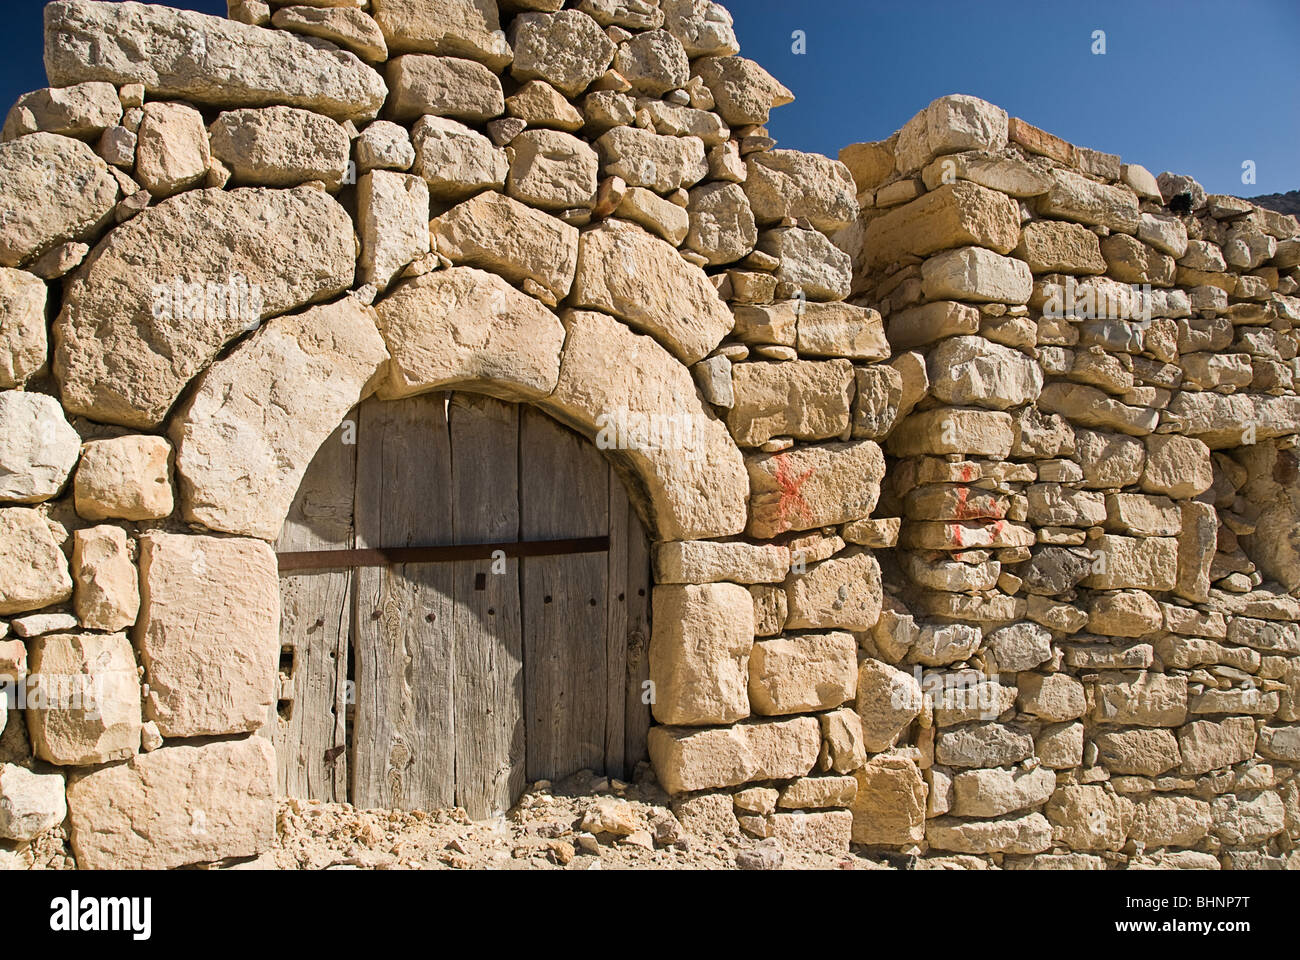 Ruins of an old house collapsed in the small village of Dana,Jordan,Asia. - Stock Image